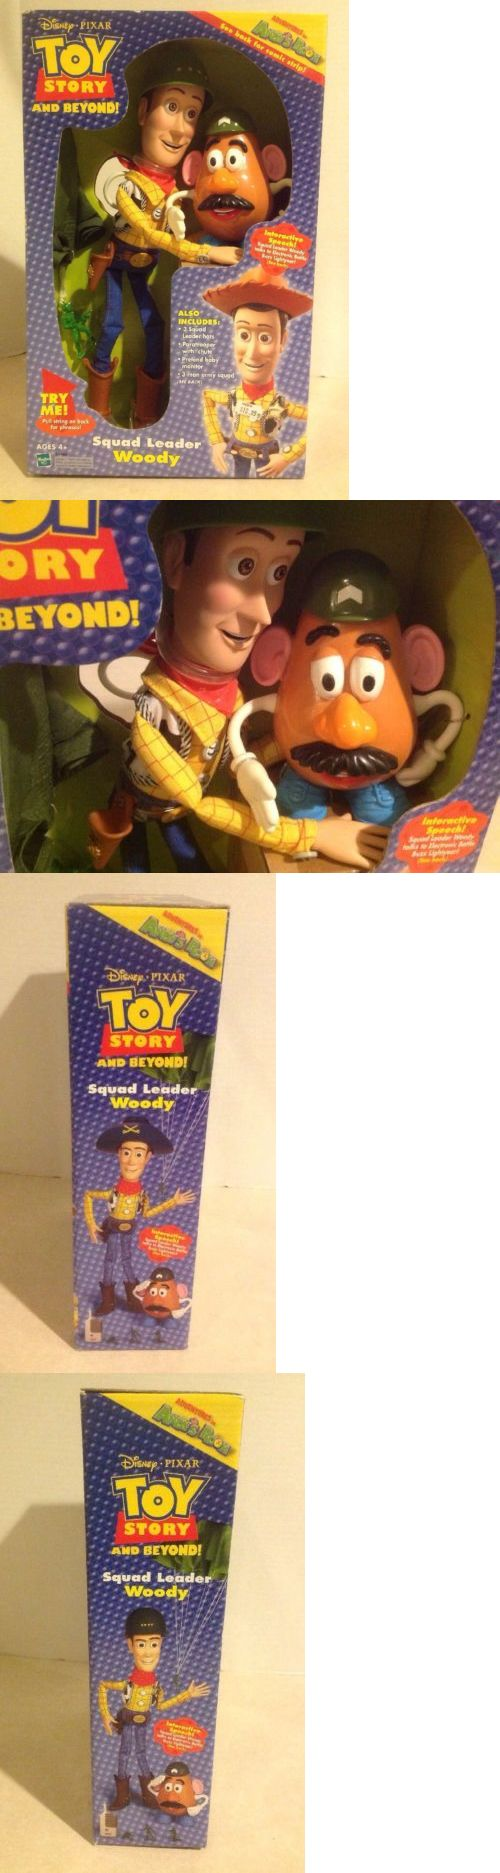 Toy Story 19223: Toy Story Squad Leader Woody W Pull String Rare New Old Stock And Beyond Vintage -> BUY IT NOW ONLY: $84.95 on eBay!